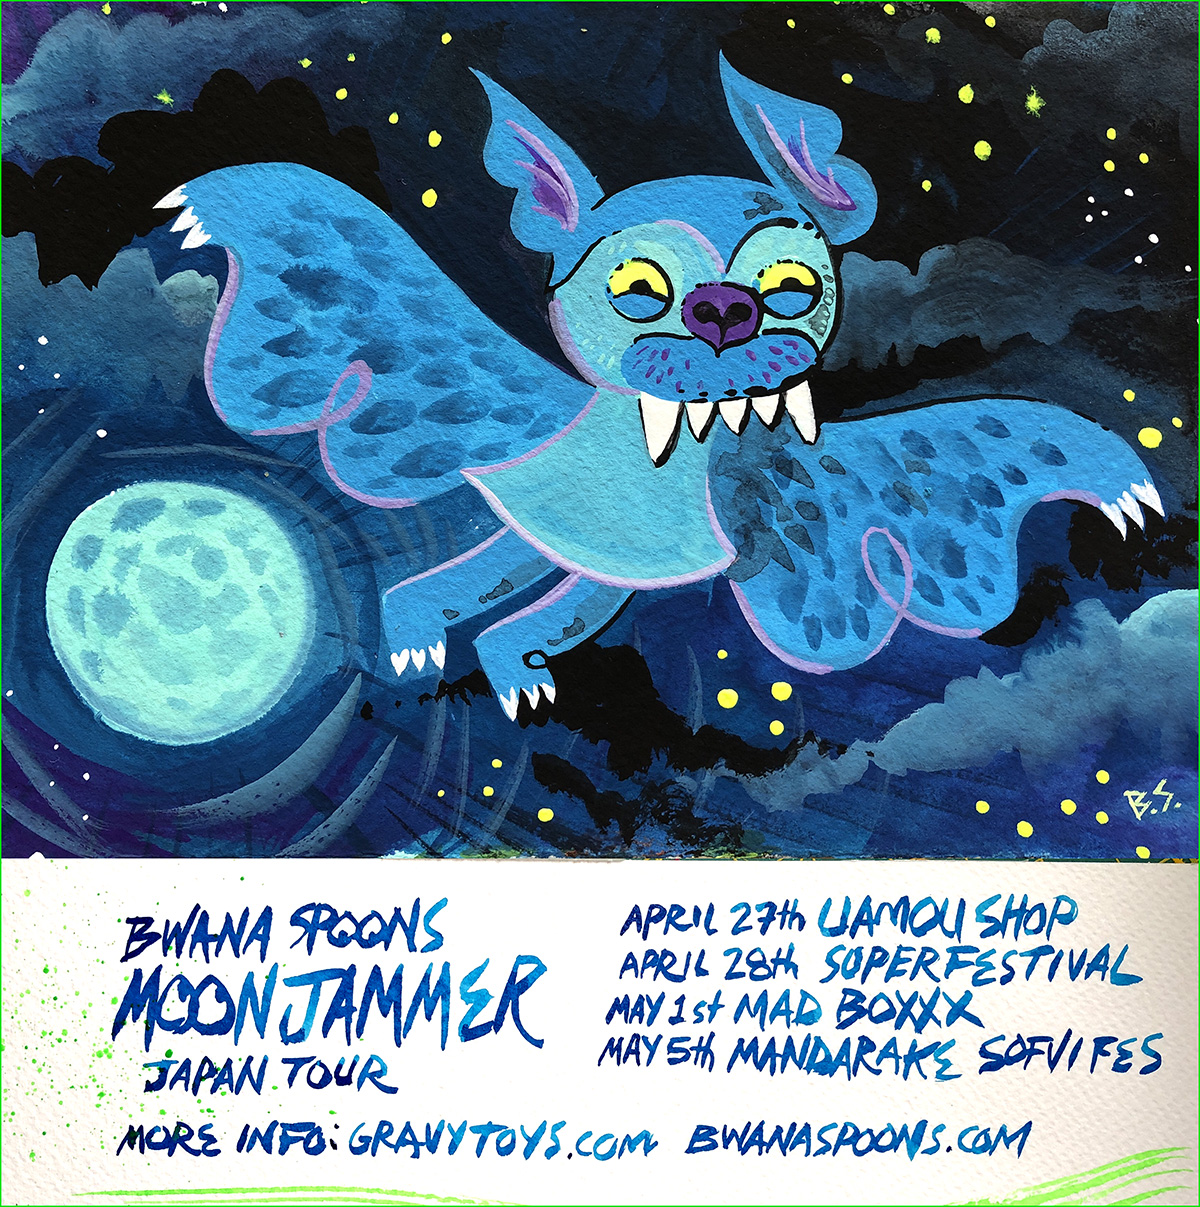 moon jammer flyer01web.jpg